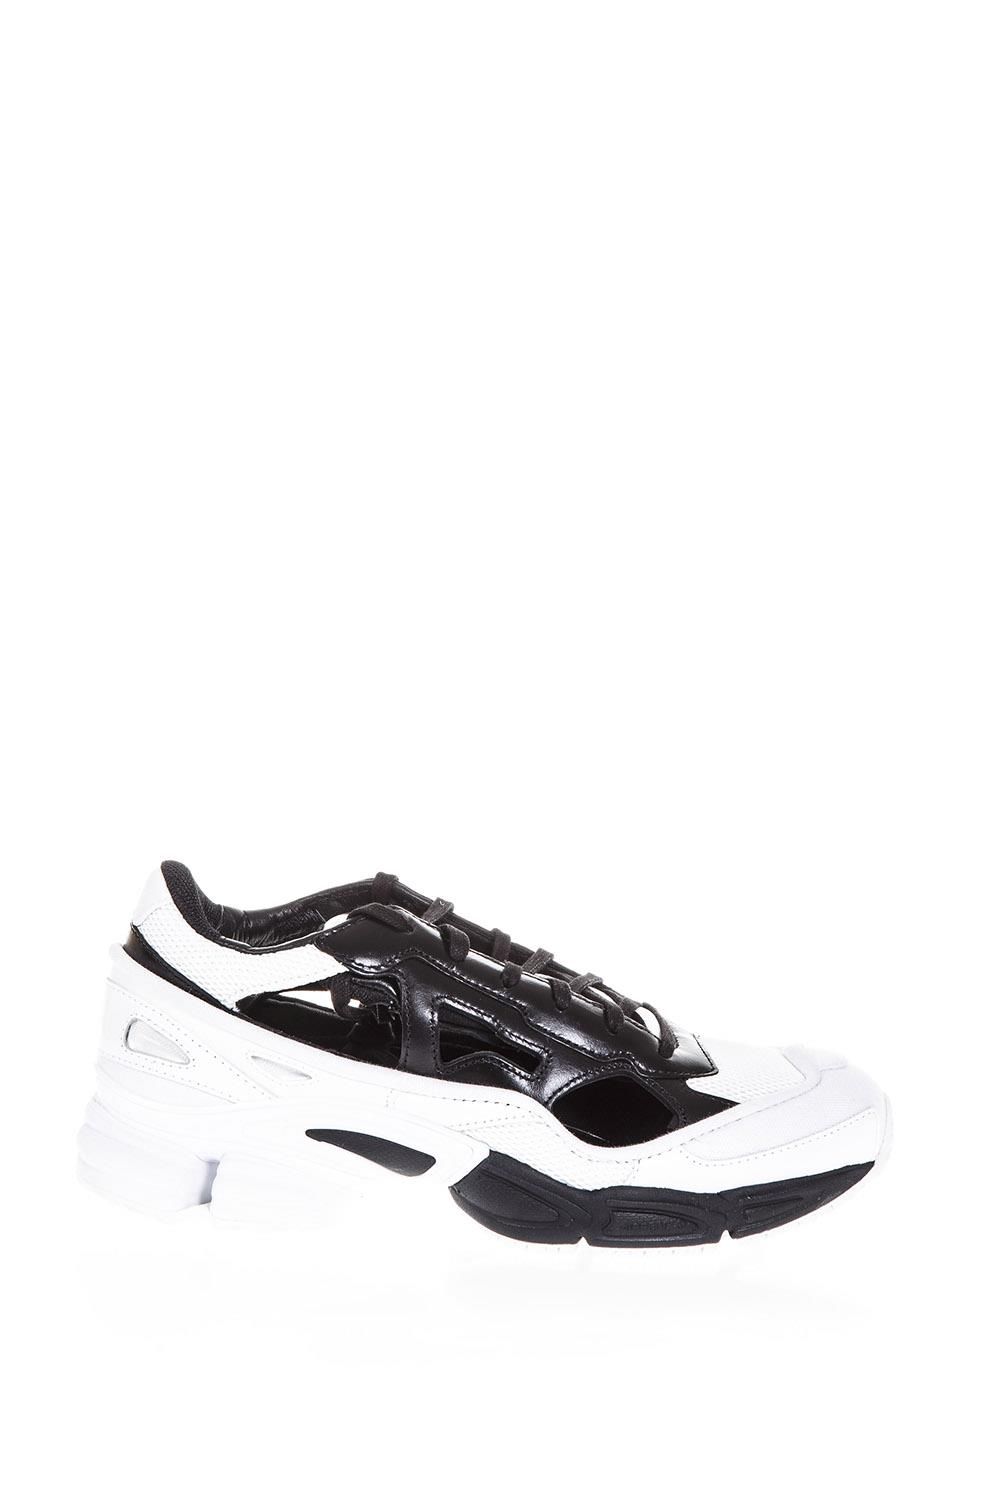 wholesale dealer ec177 ed345 REPLICANT OZWEEGO BLACK & WHITE SNEAKERS BY RAF SIMONSSS 2018